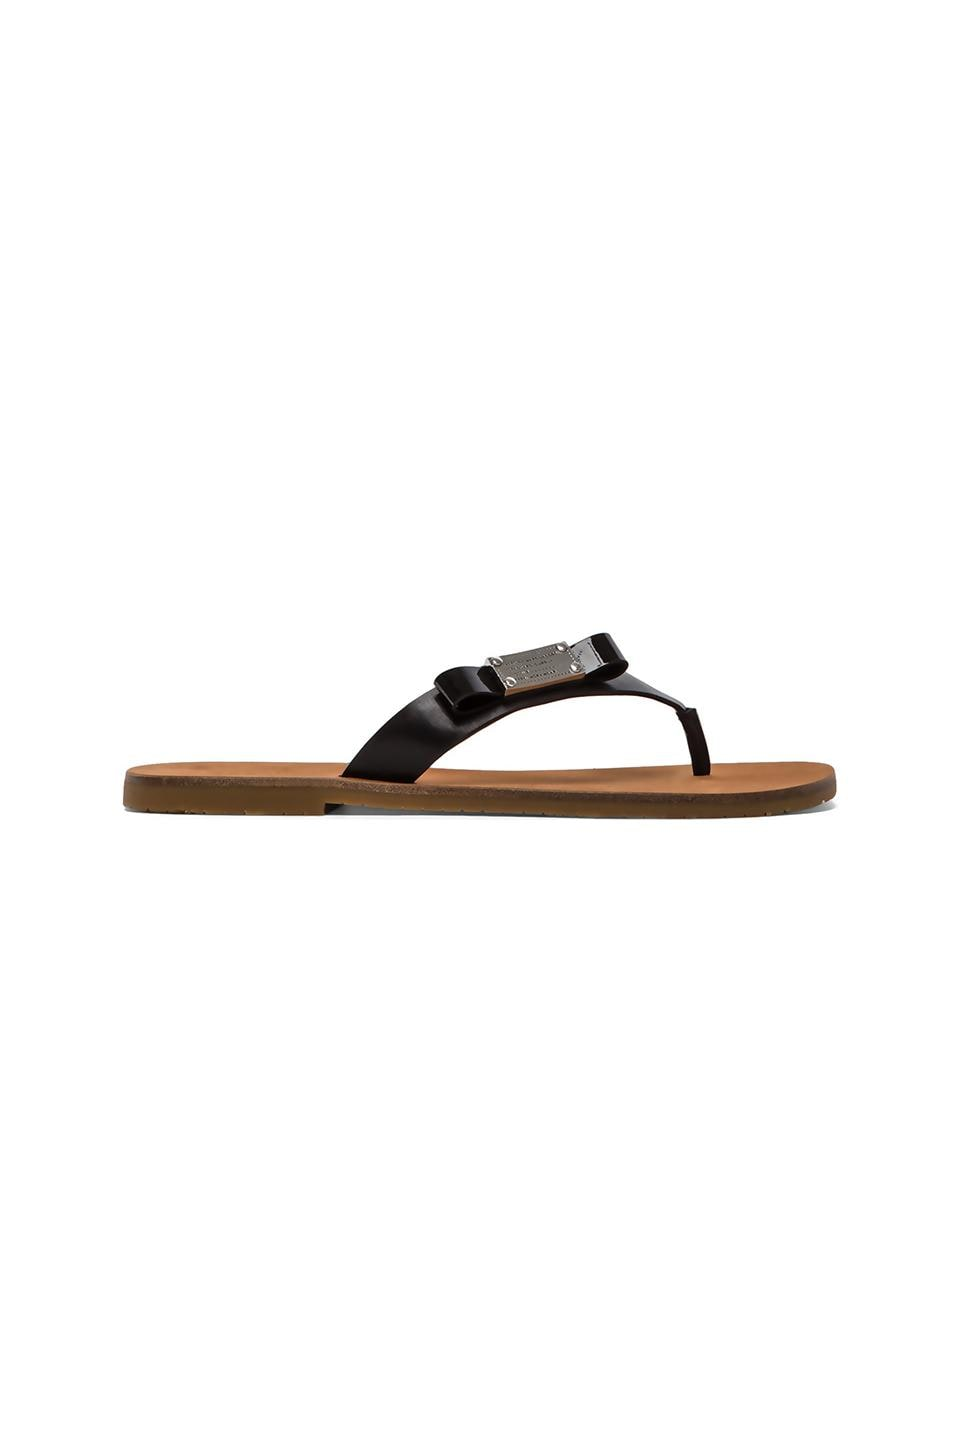 Marc by Marc Jacobs Tuxedo Logo Plaque Leather Flip Flop in Black